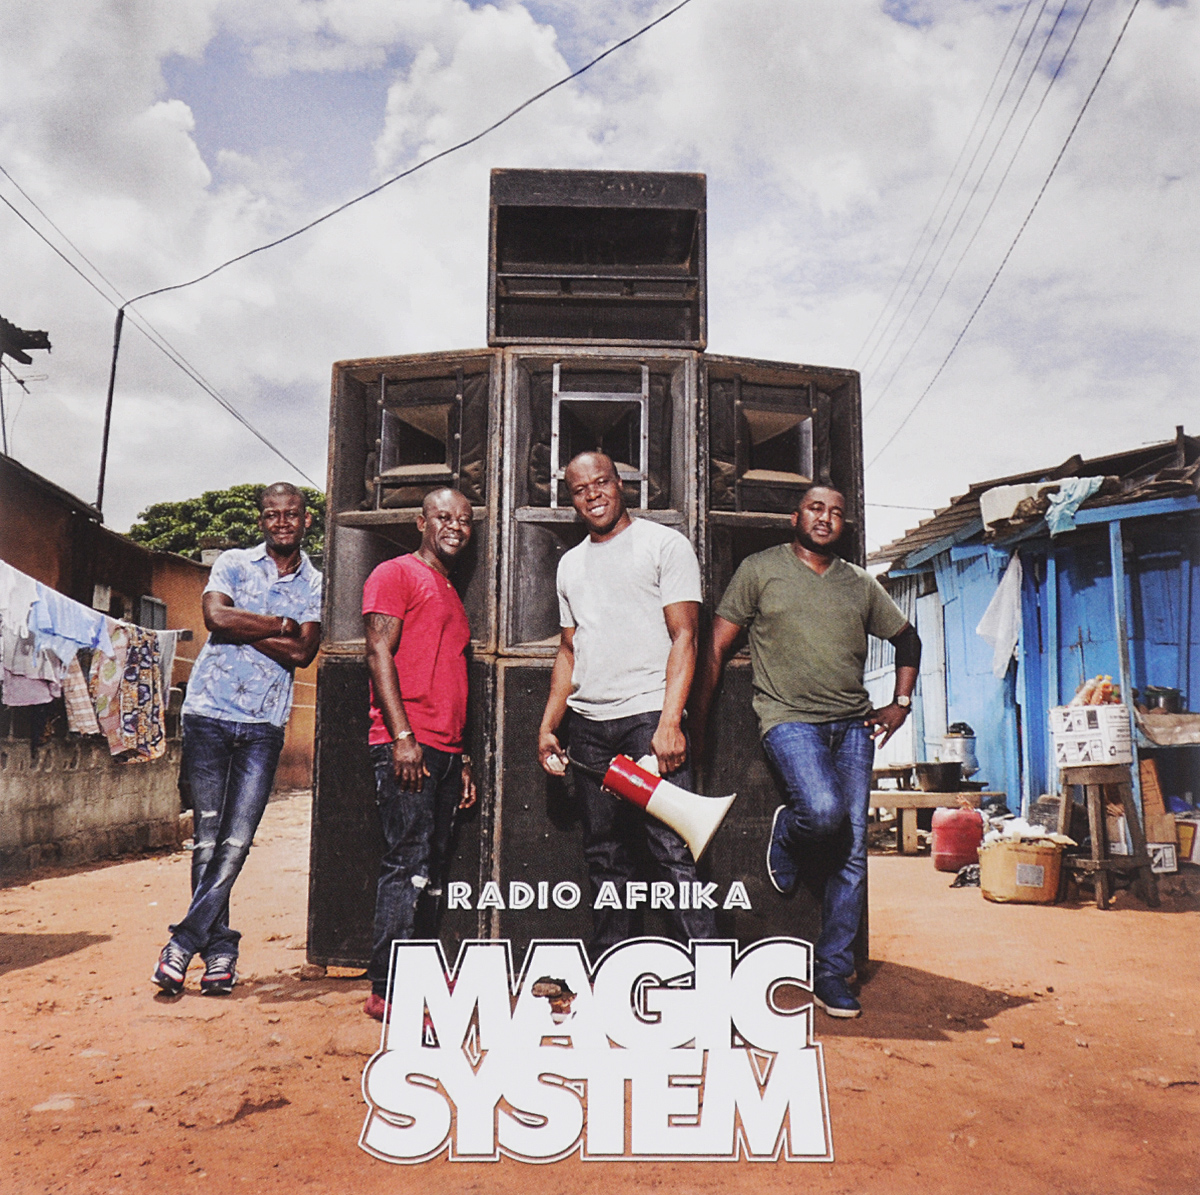 Magic System. Radio Afrika